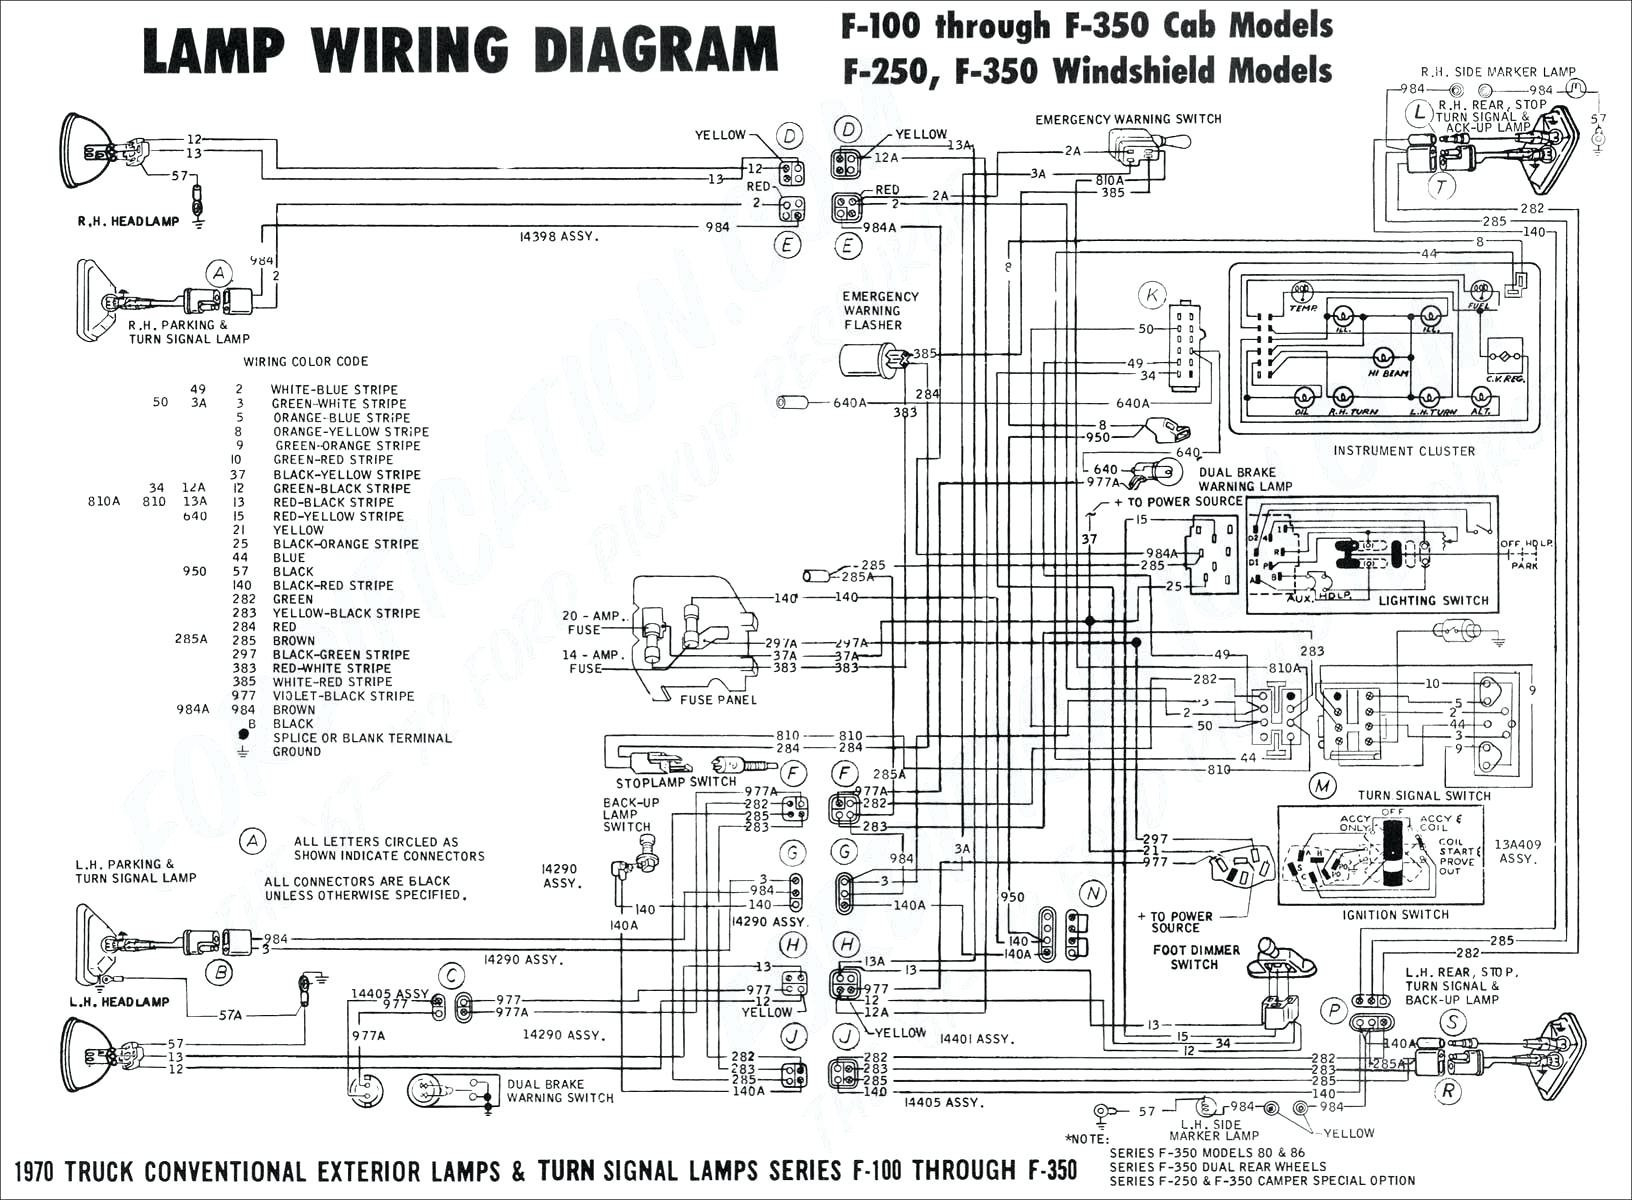 WRG-7297] 2009 Mack Wiring Diagrams Starter on